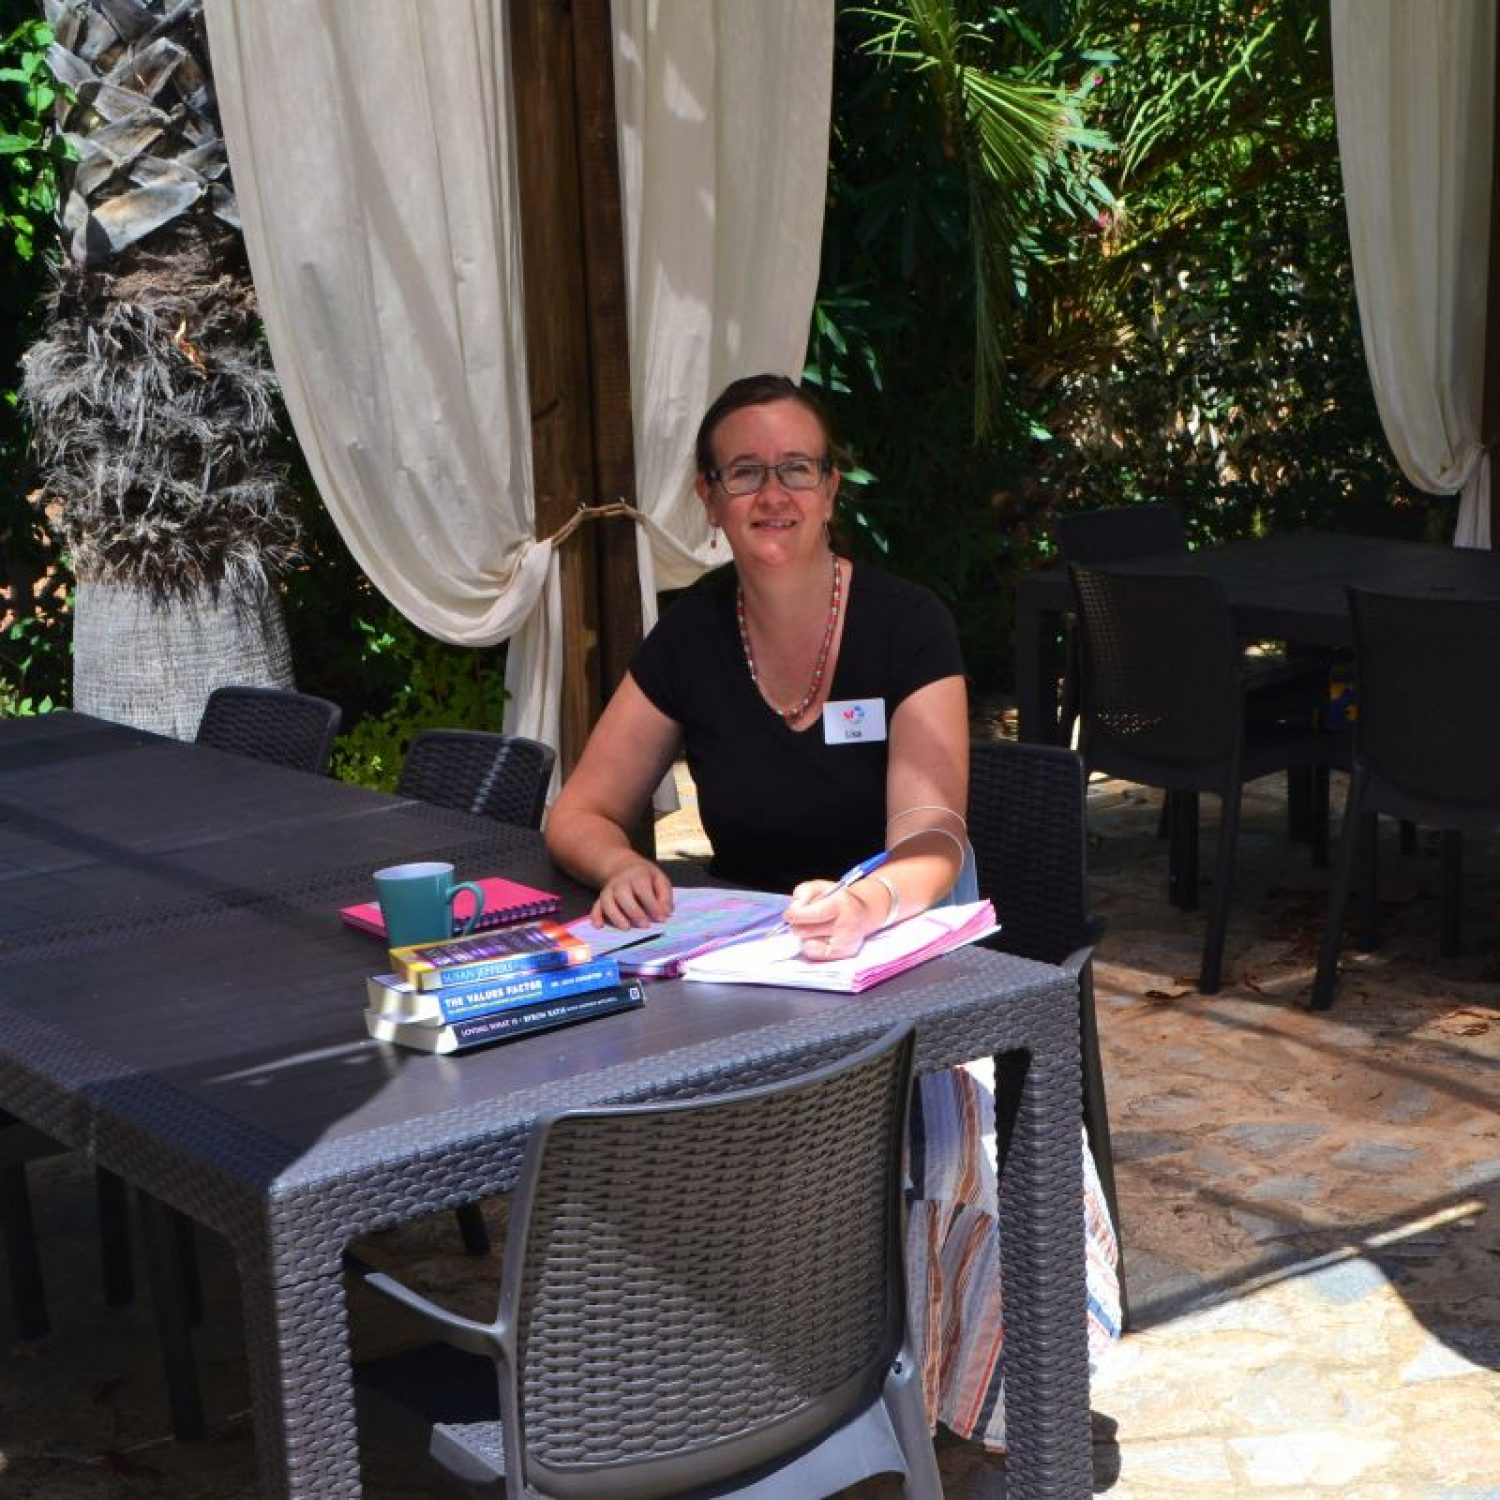 Books to read at La Crisalida Retreats, health and wellbeing retreat, Spain to find clarity